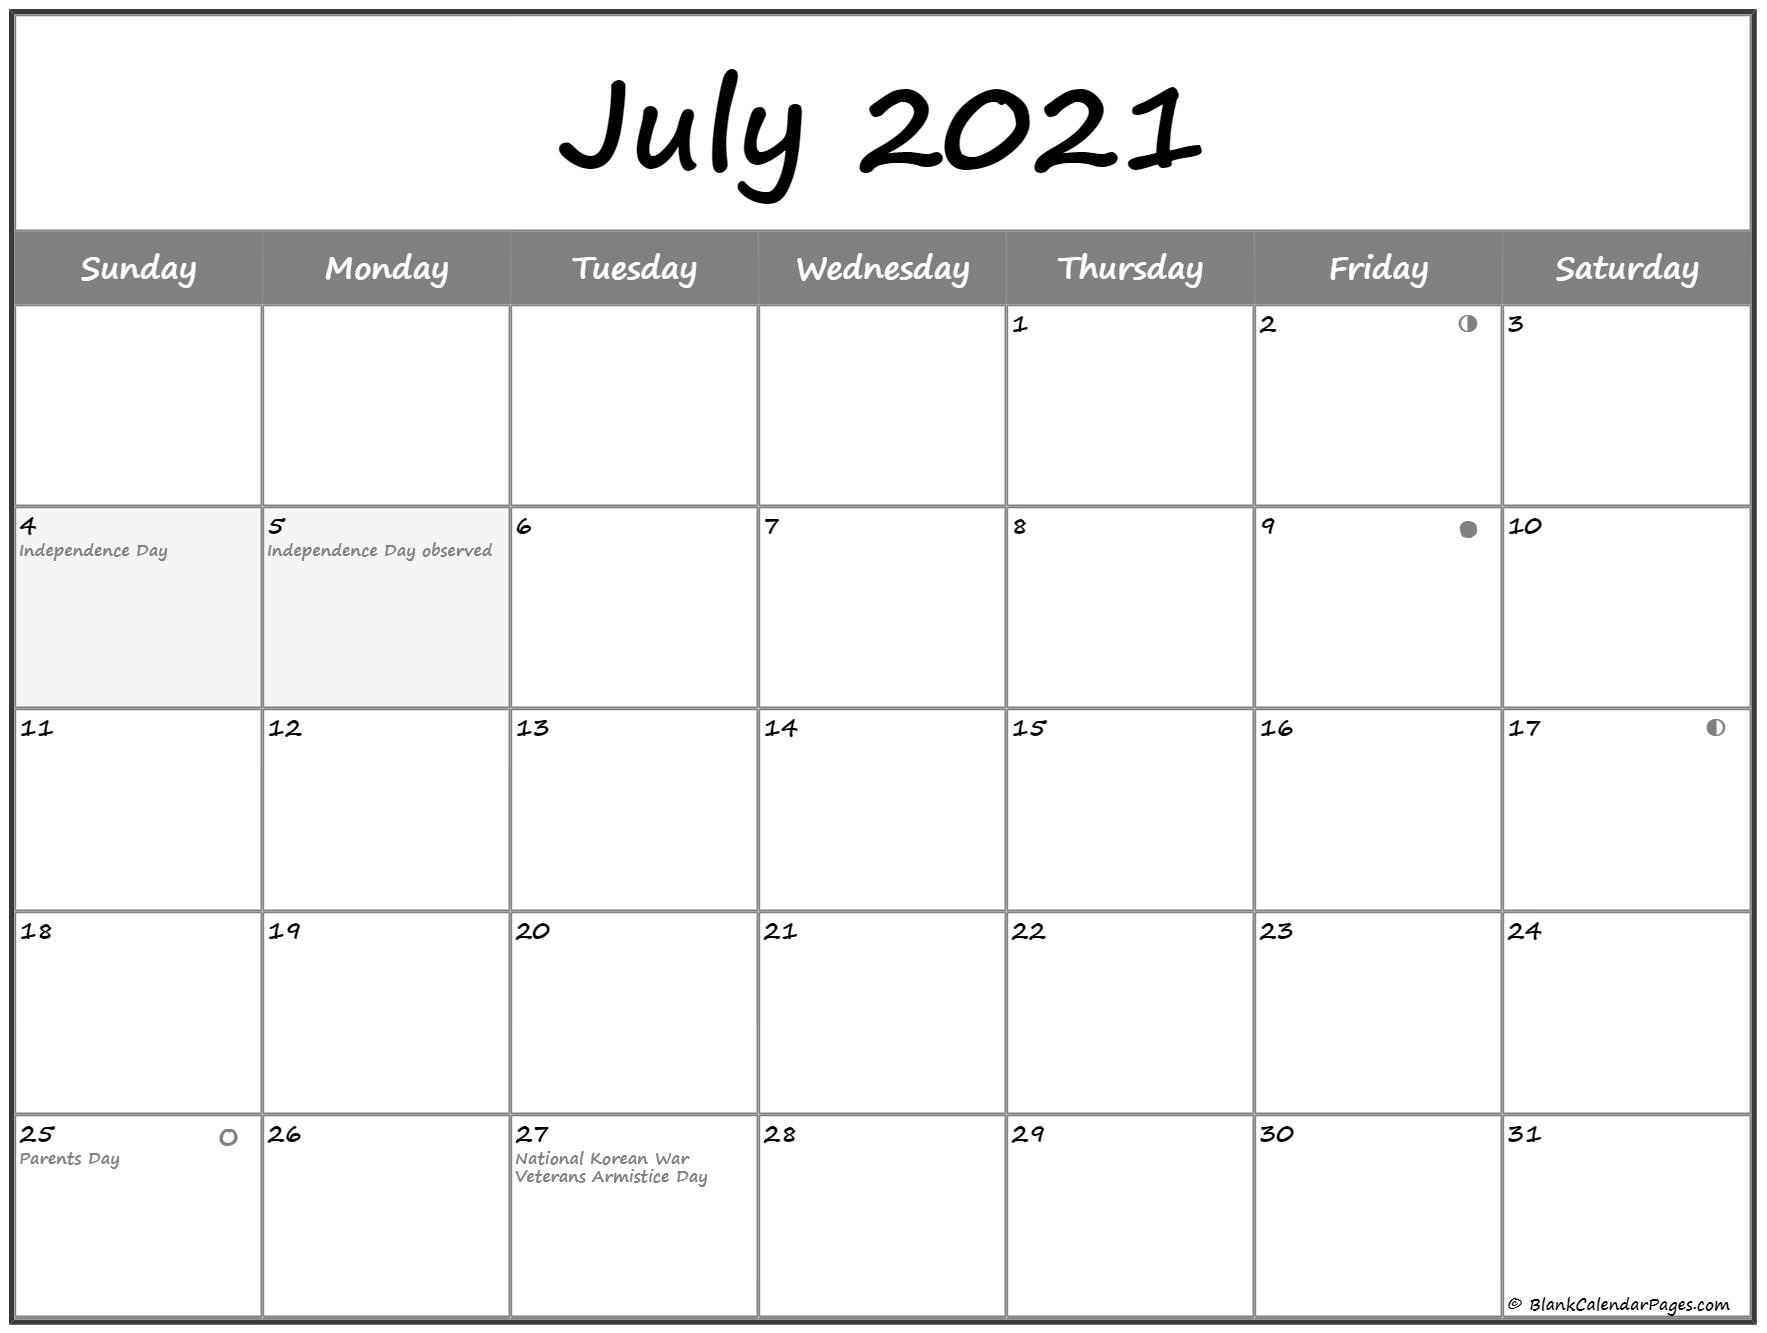 July 2021 Lunar Calendar | Moon Phase Calendar Intended For 2021 Deer Hunting Lunar Calendar